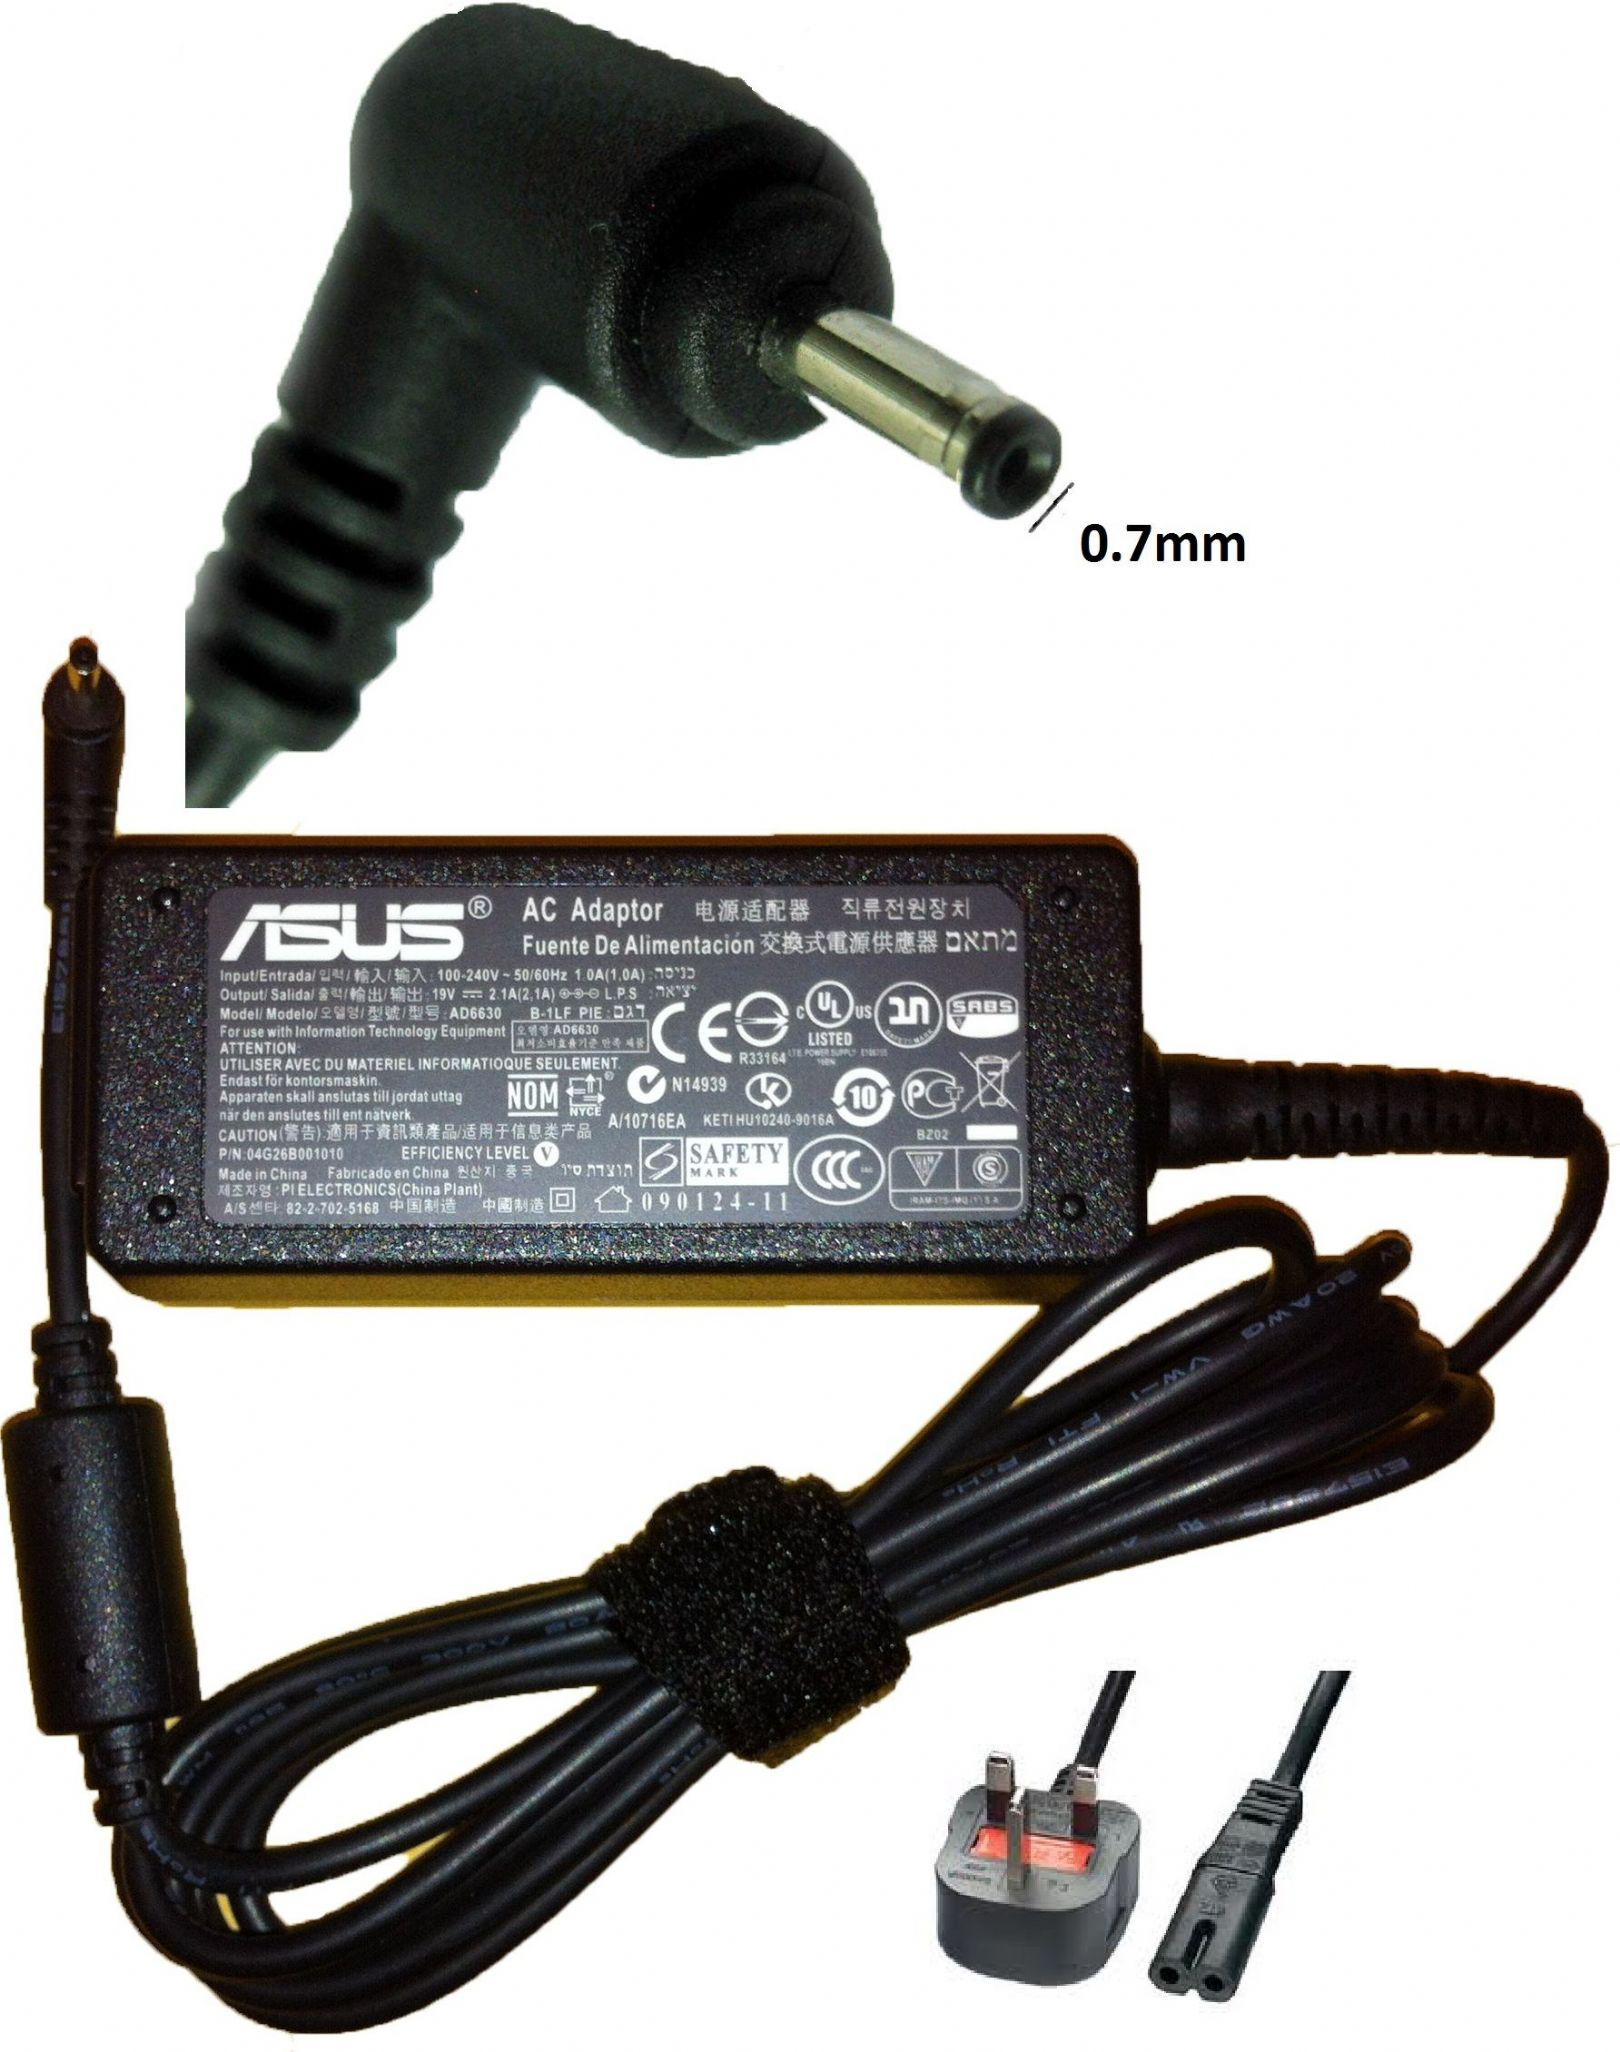 Asus 1008Ha Eee Pc Charger